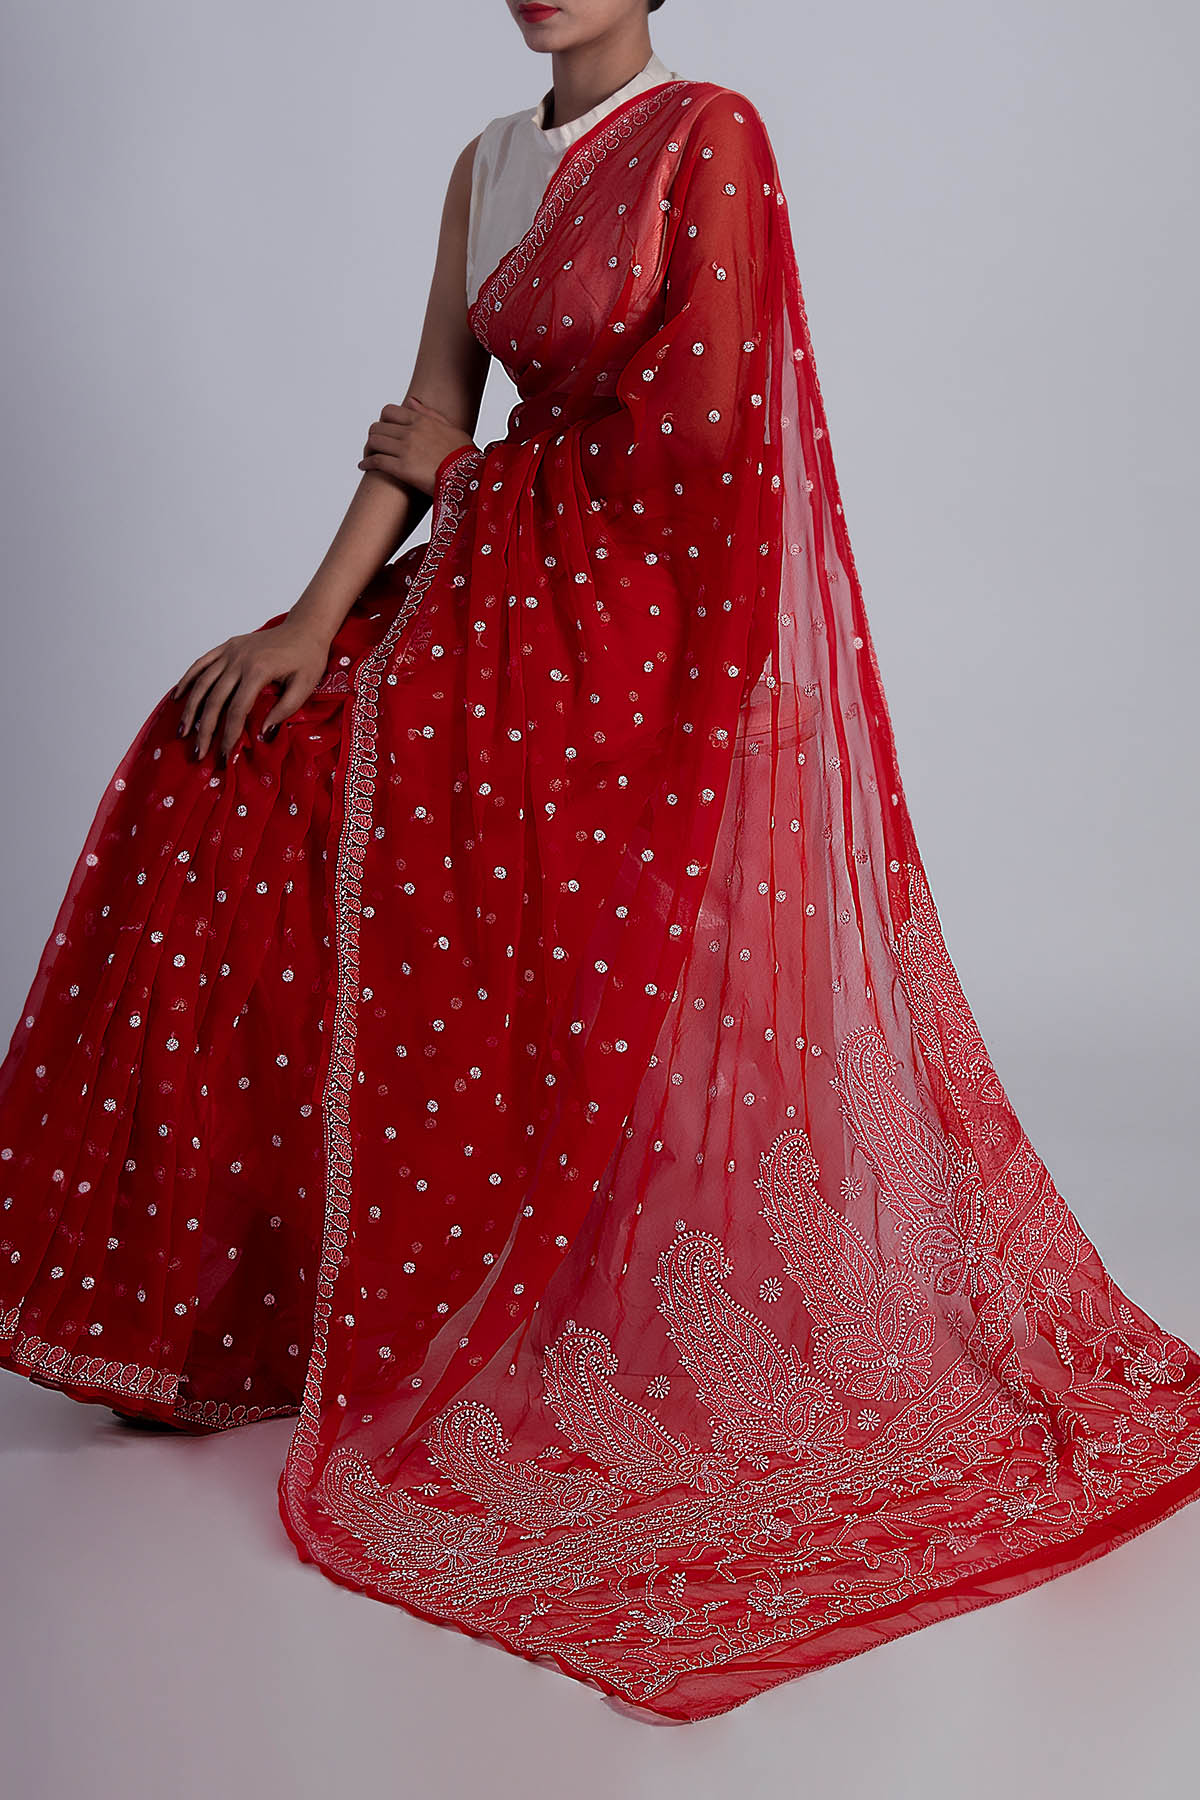 Hand Embroidered Red Colour Lucknowi Chikankari Saree (With Blouse - Georgette) GA250609